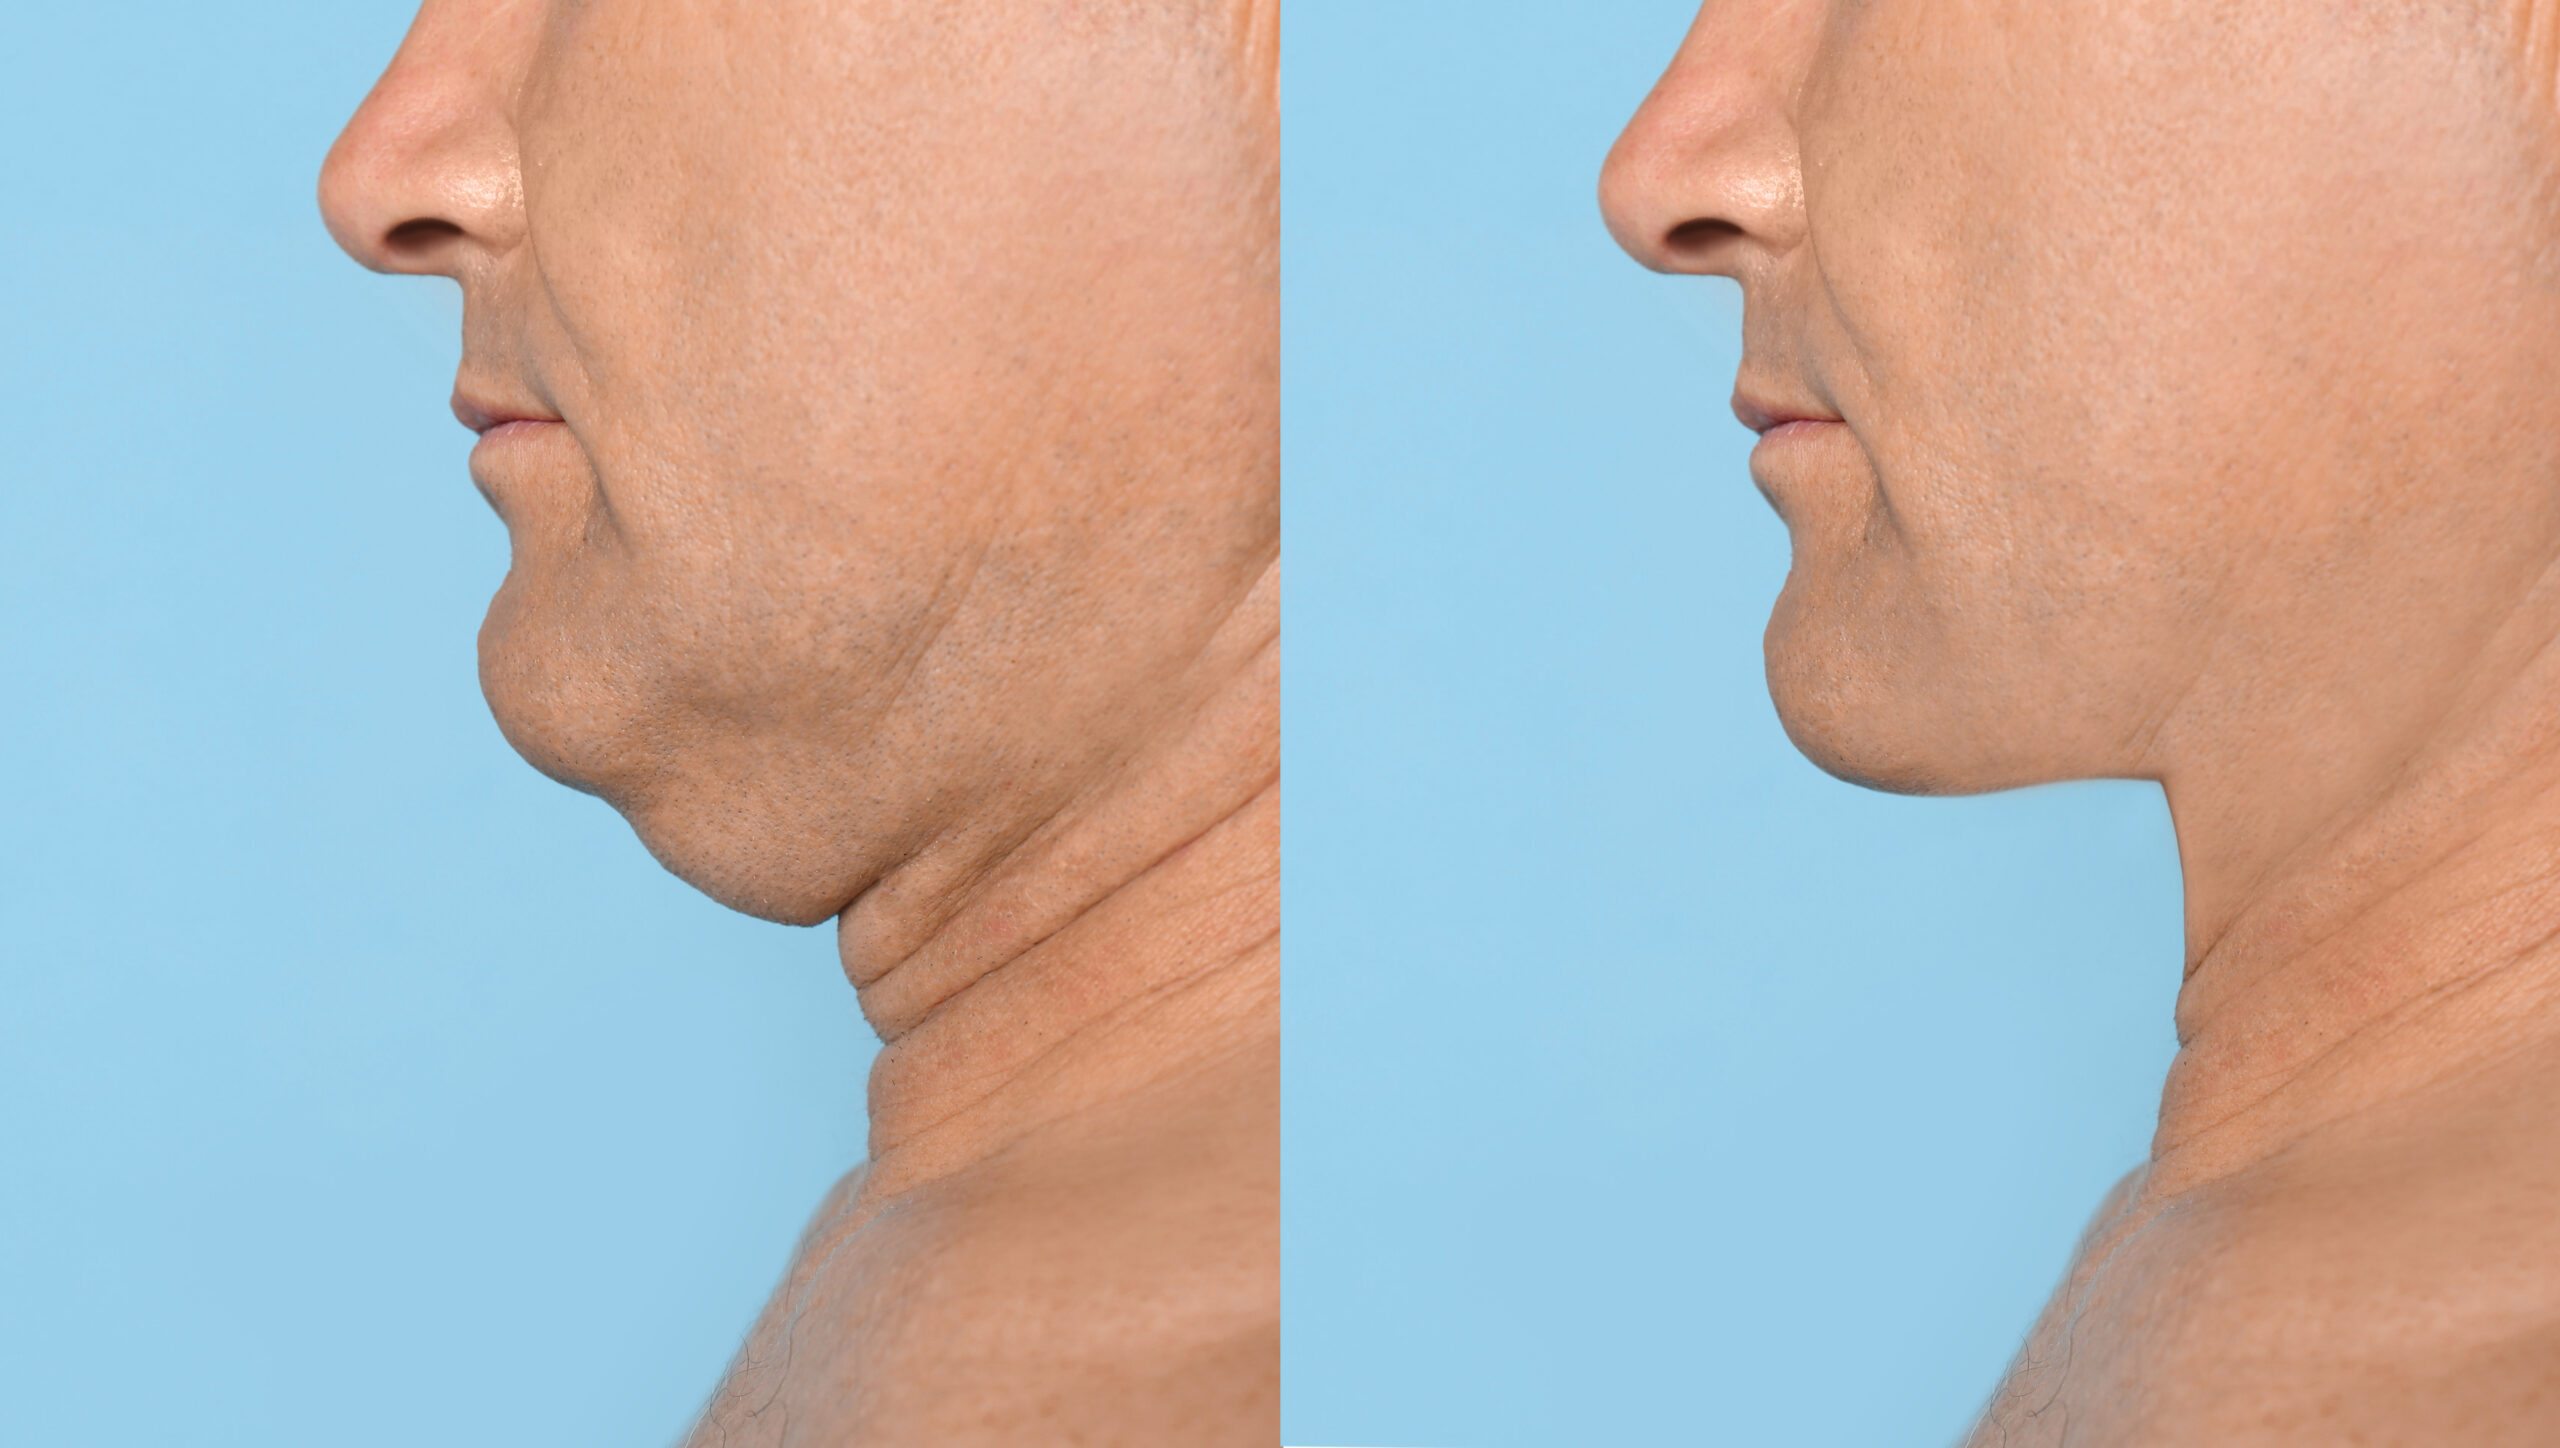 The before and after pictures of a man that received Kybella treatment for his double chin.